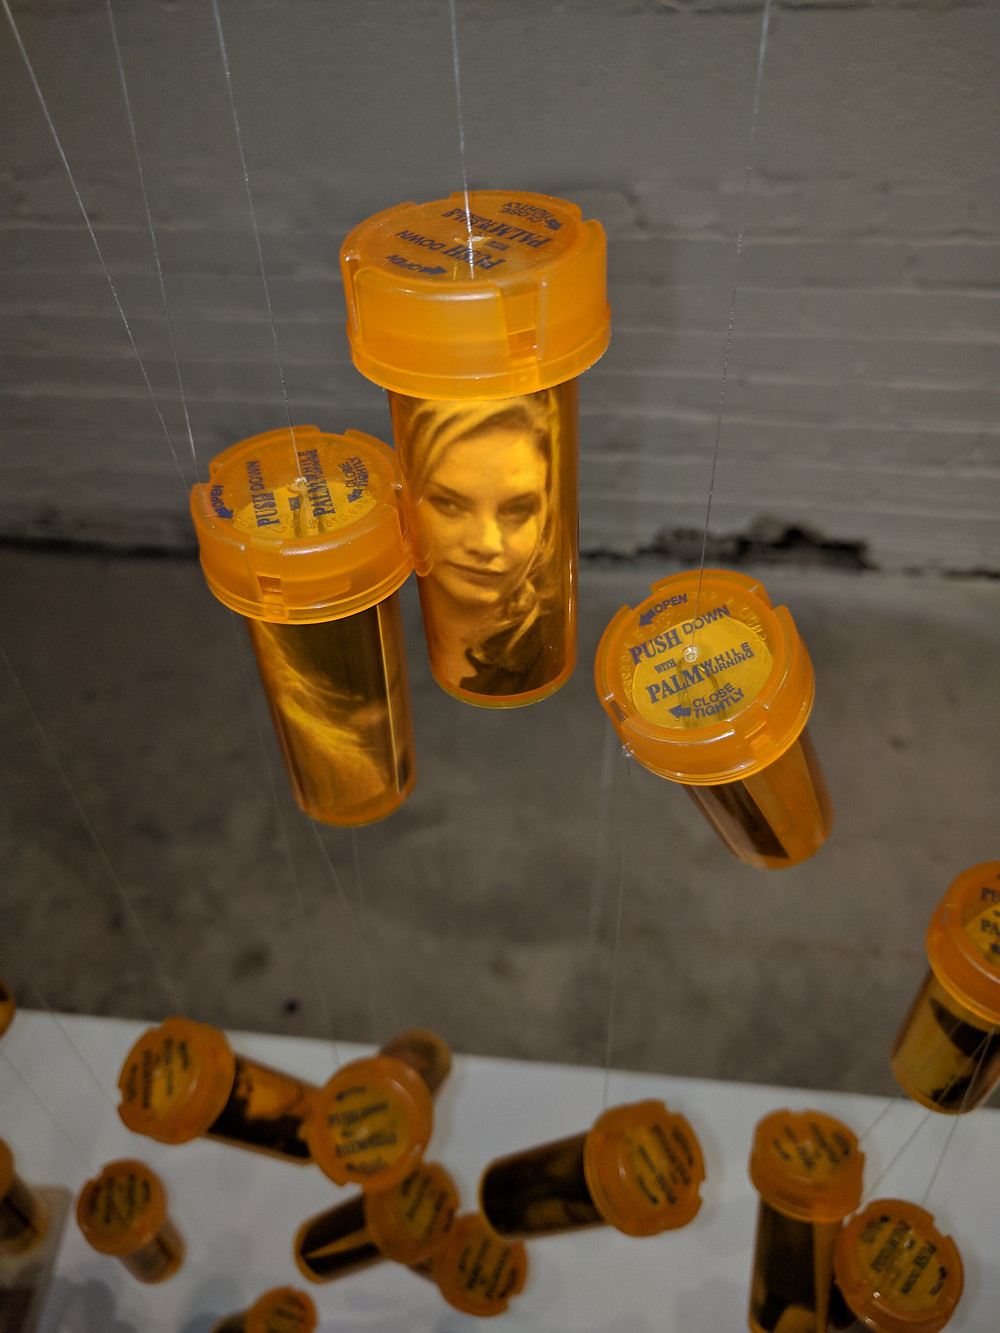 Commenting on the opoid crisis, this artists hung a pill bottle with a photo of celebreties who have overdosed.